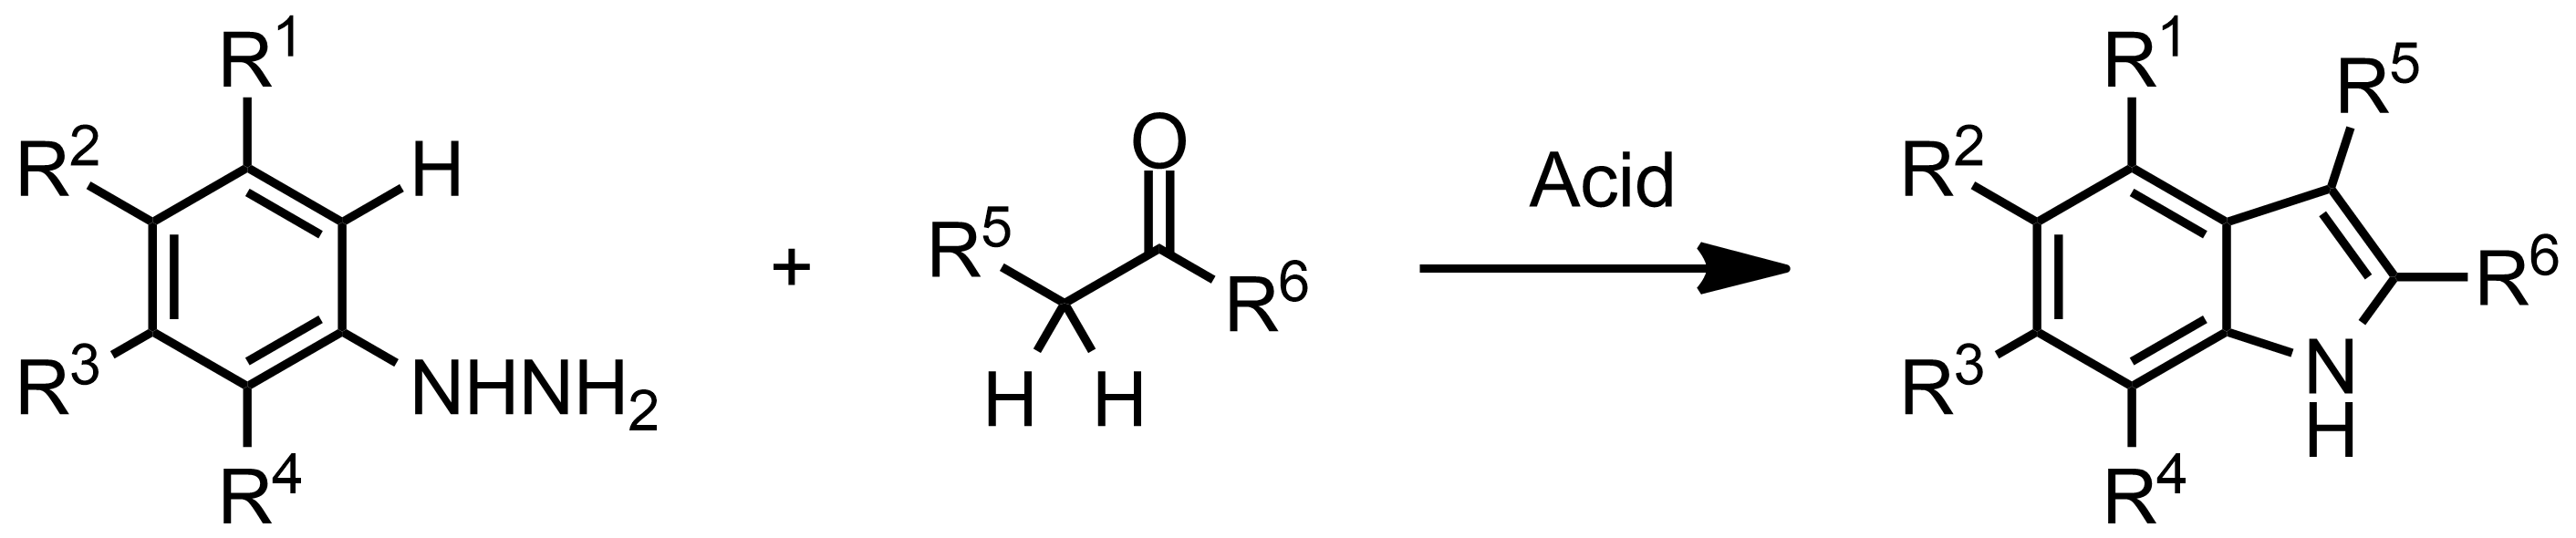 Schematic representation of the Fischer Indole Synthesis.